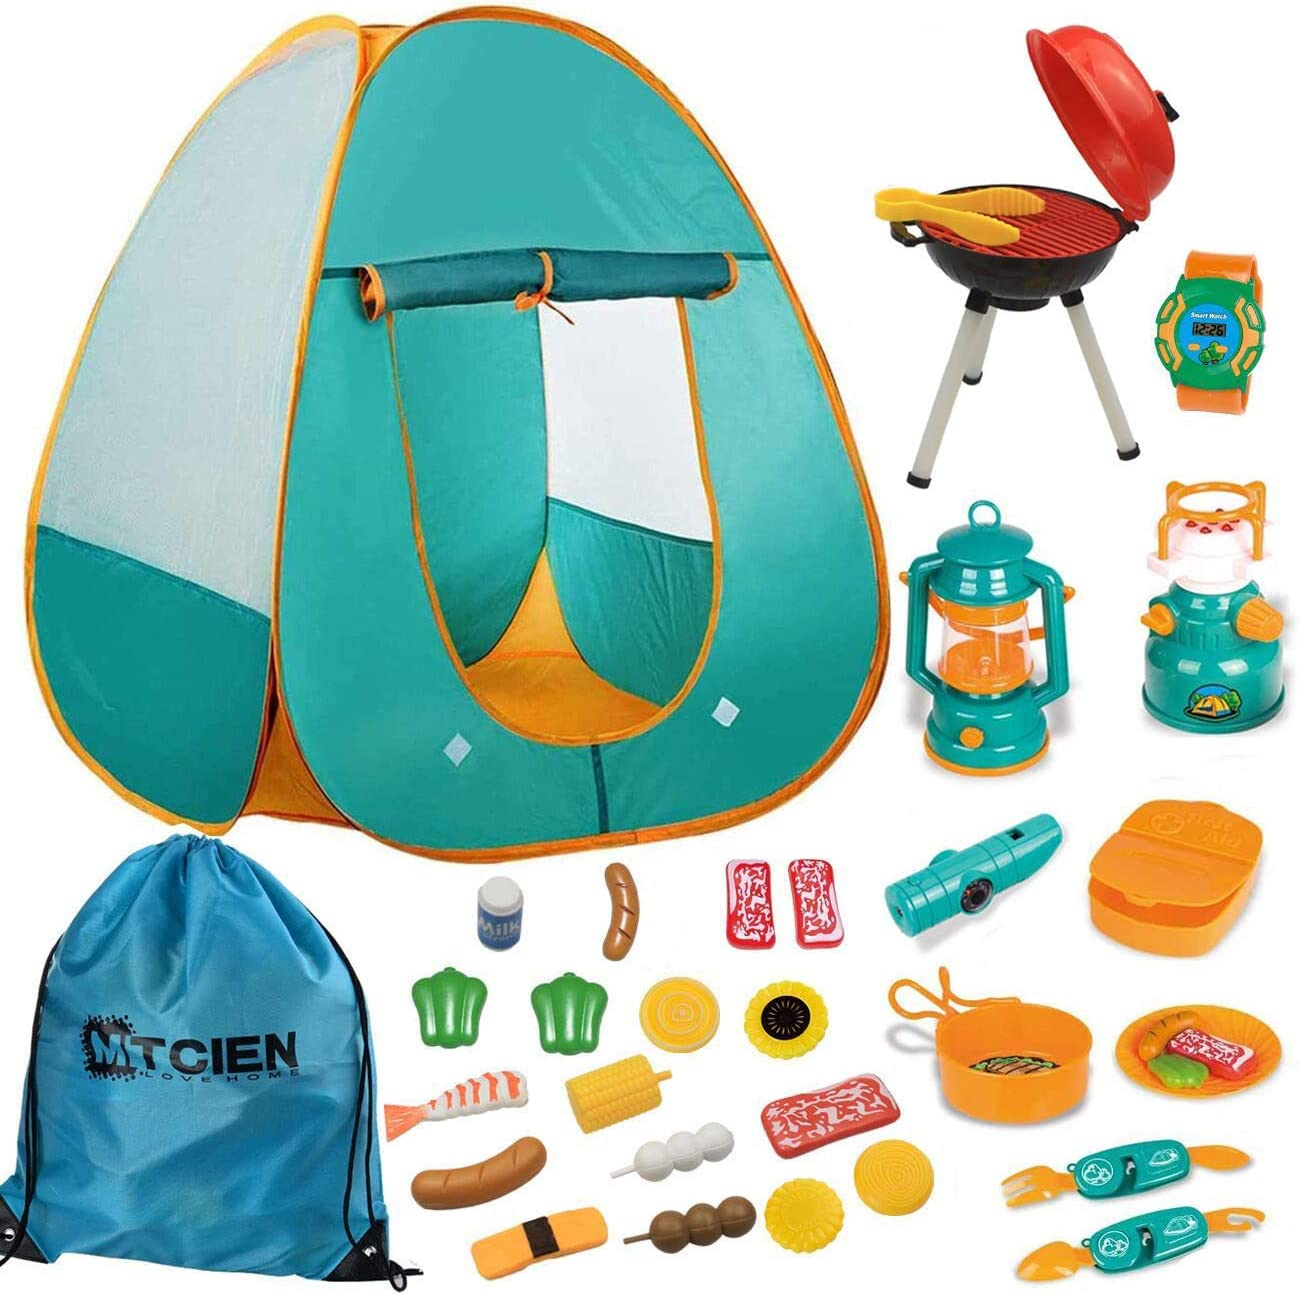 Mitcien Kids Camping Gear Set with Pop Up Play Tent for Kids Toddler Indoor Outdoor Toys Pretend BBQ Play Set for Boys Girls Camping Tools, 17 Pieces